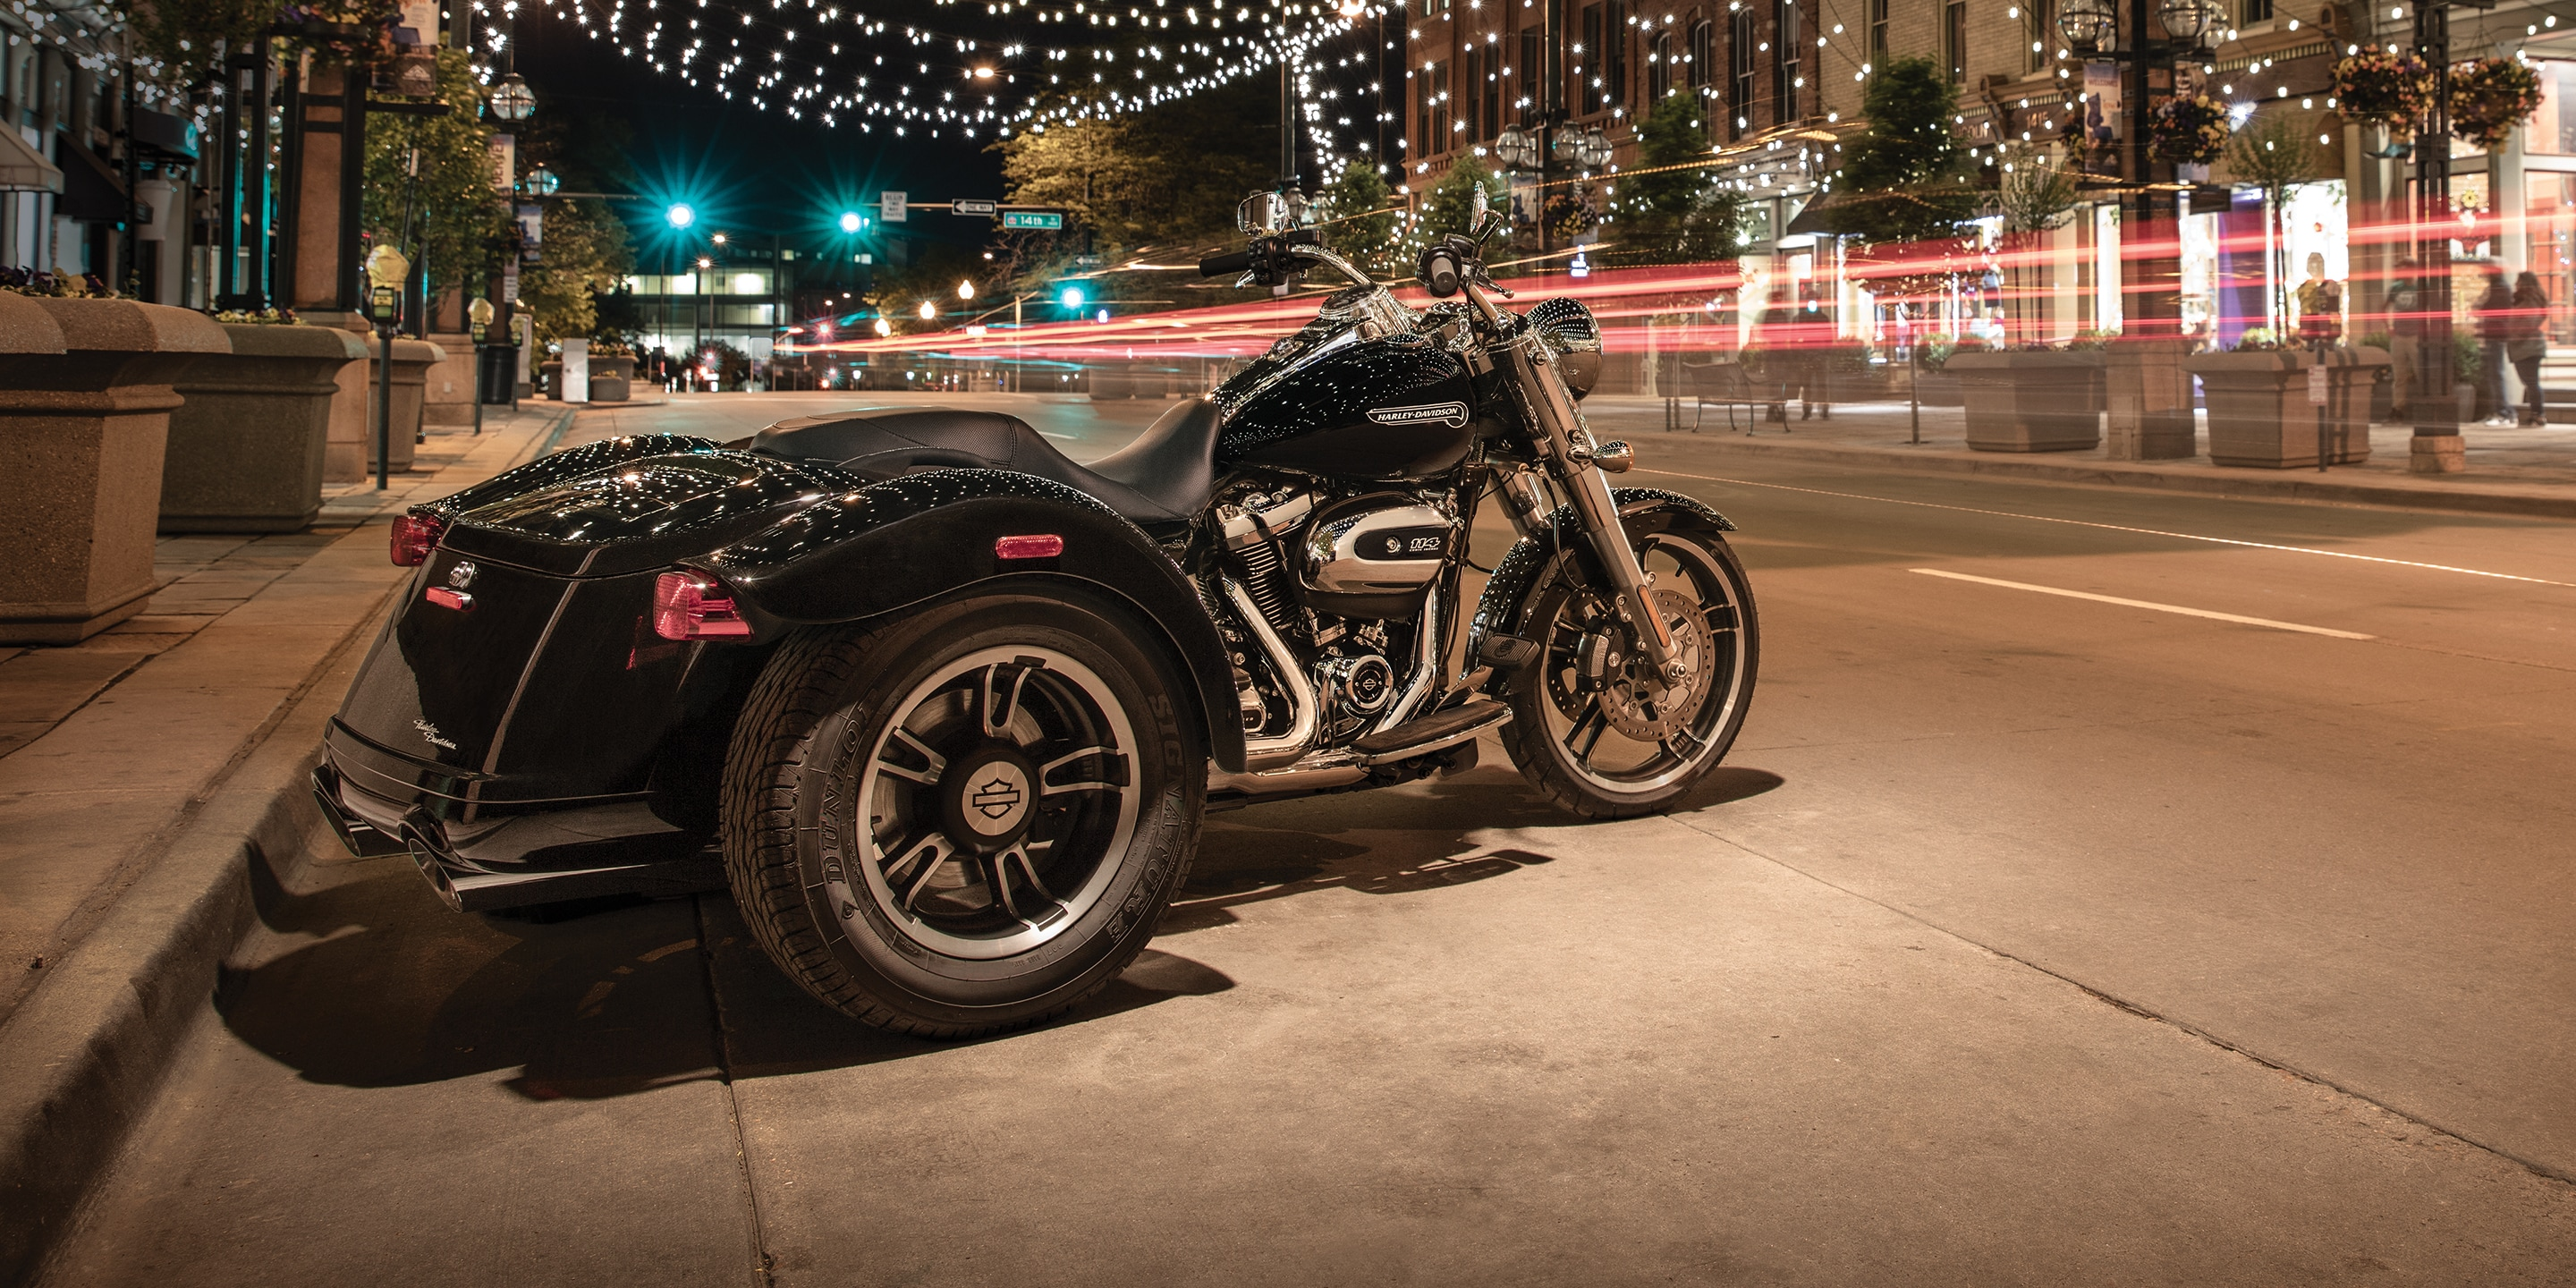 2019 freewheeler h d motorcycle parked on a street